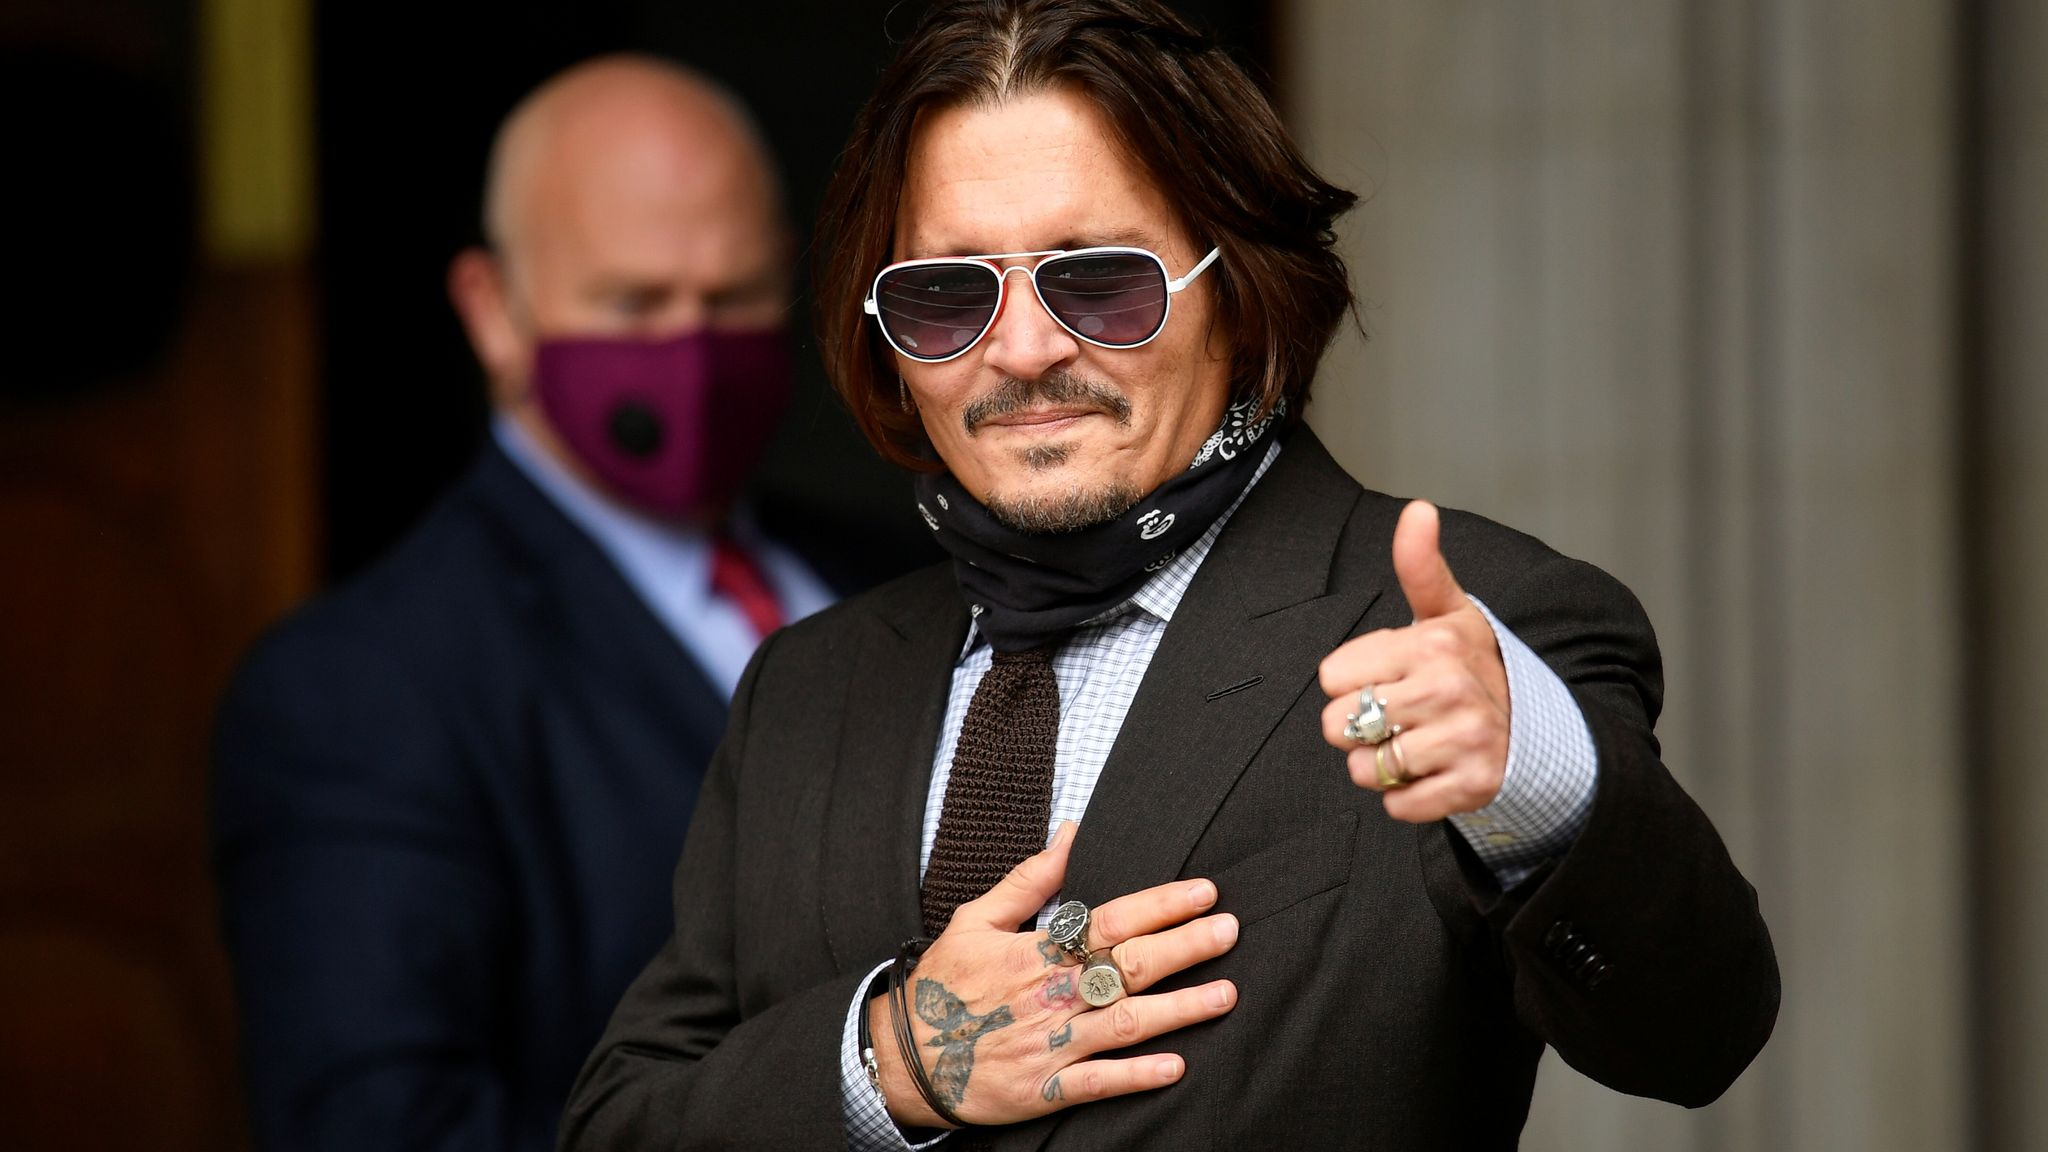 Johnny Depp arrives at the High Court on day seven of his libel action against the publishers of The Sun